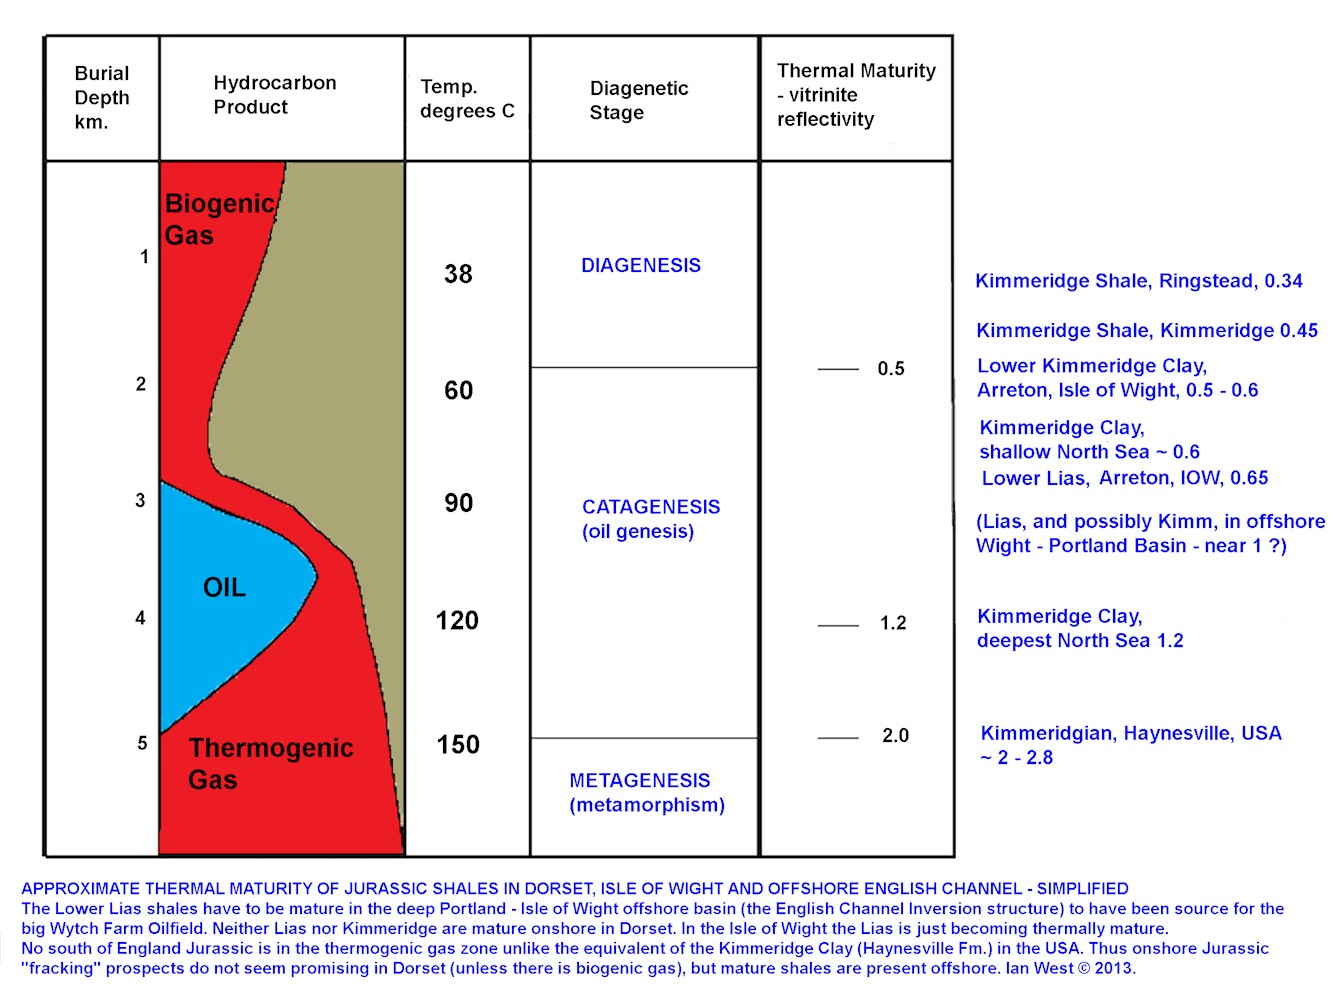 Burial diagenesis and thermal maturity of Jurassic shales in the south of England, simplified